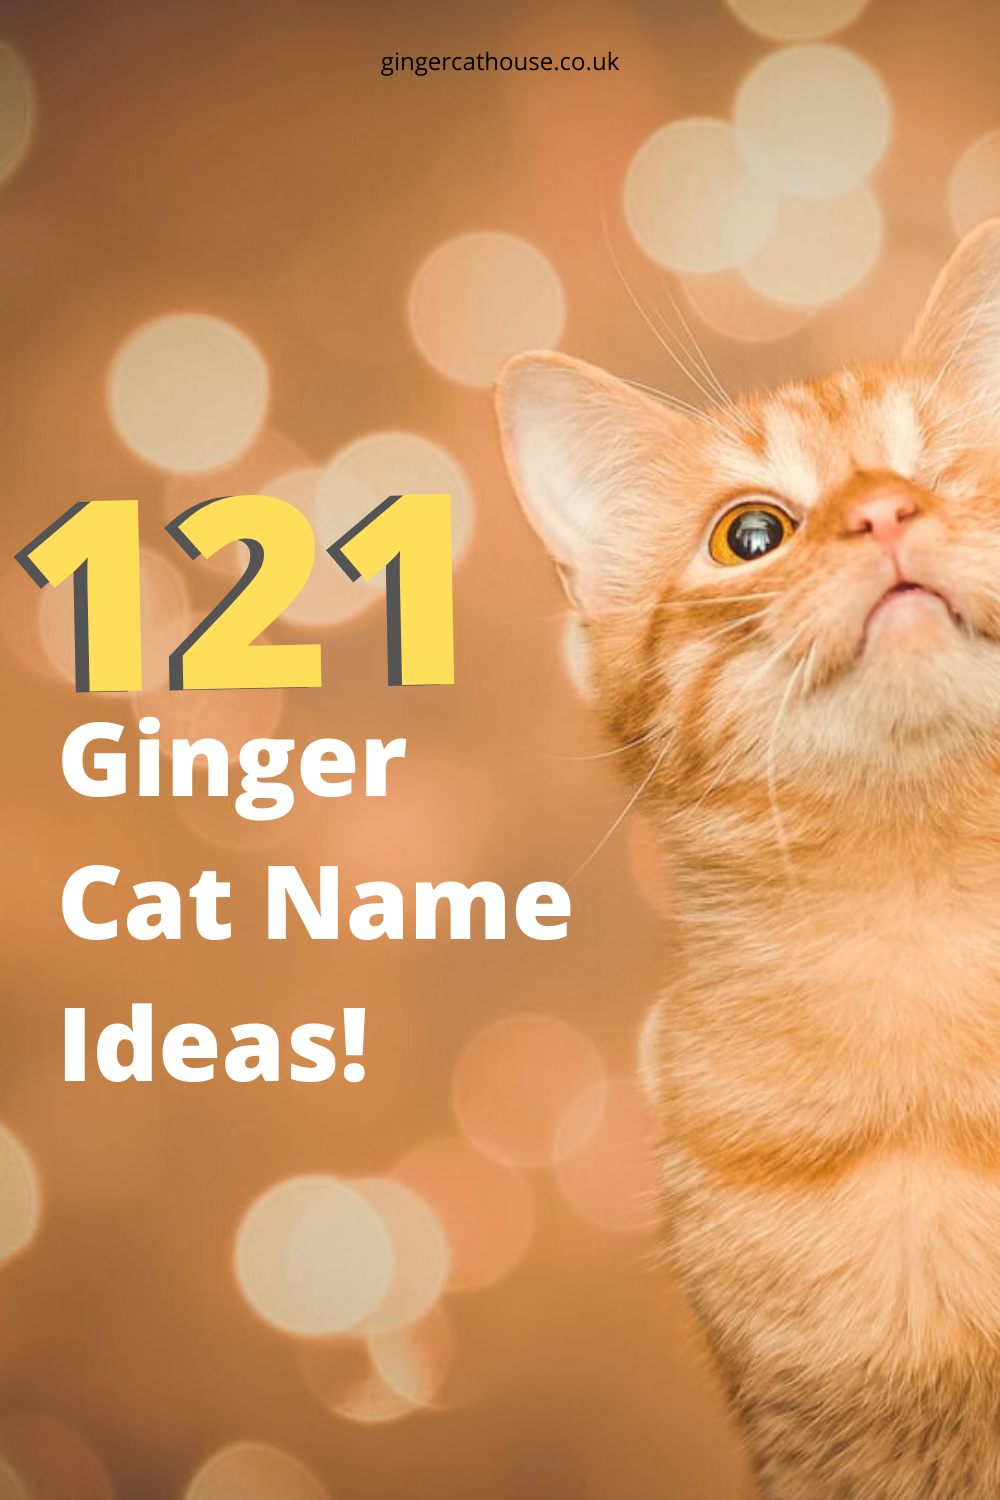 121 Ginger cat names name ideas for orange cats! in 2020